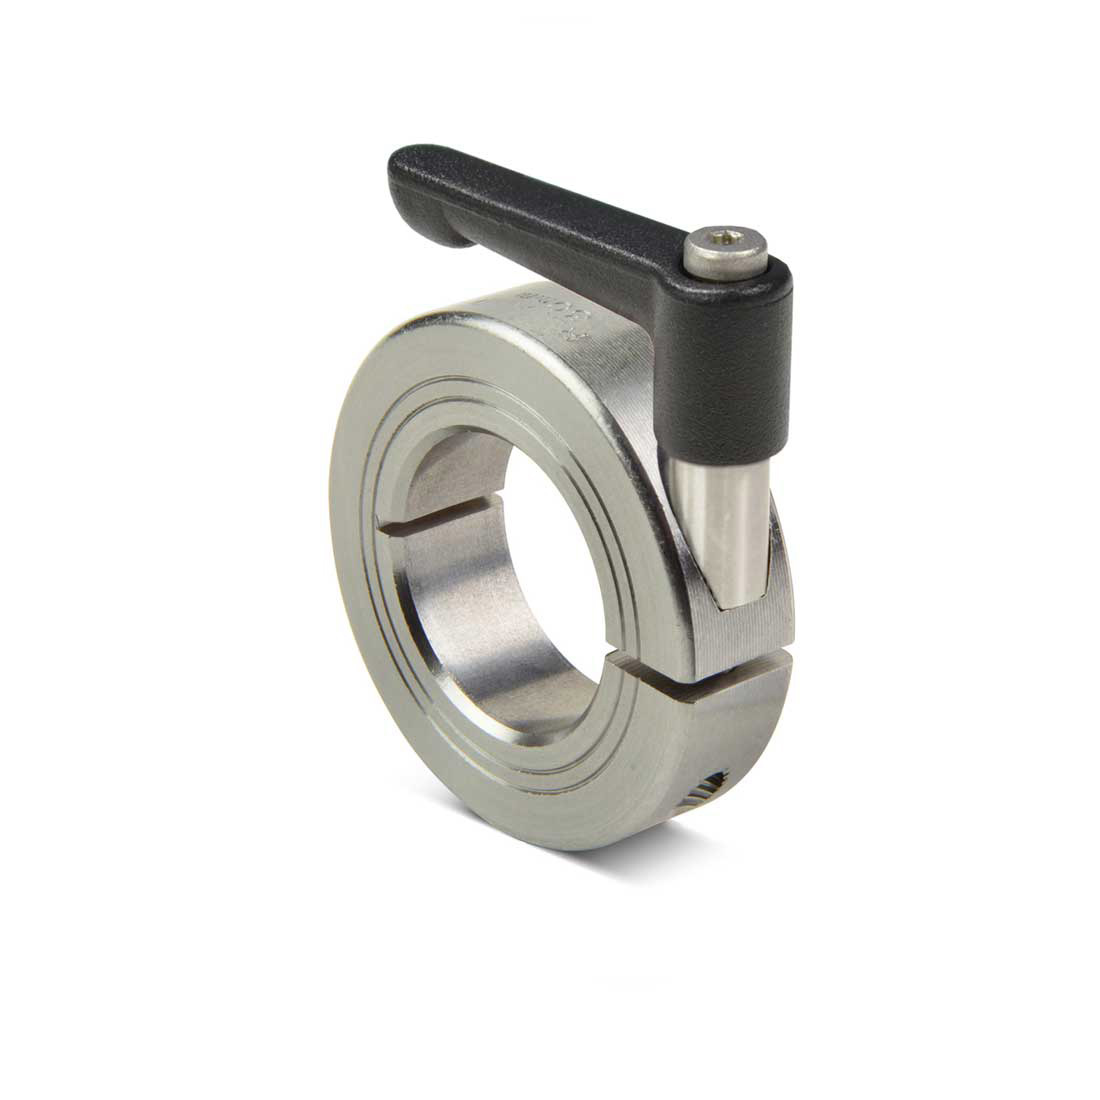 Ruland quick clamping shaft collar with clamping lever. The adjustable lever with built-in threaded stud can be used to quickly clamp, release and adjust shaft collars with no tools